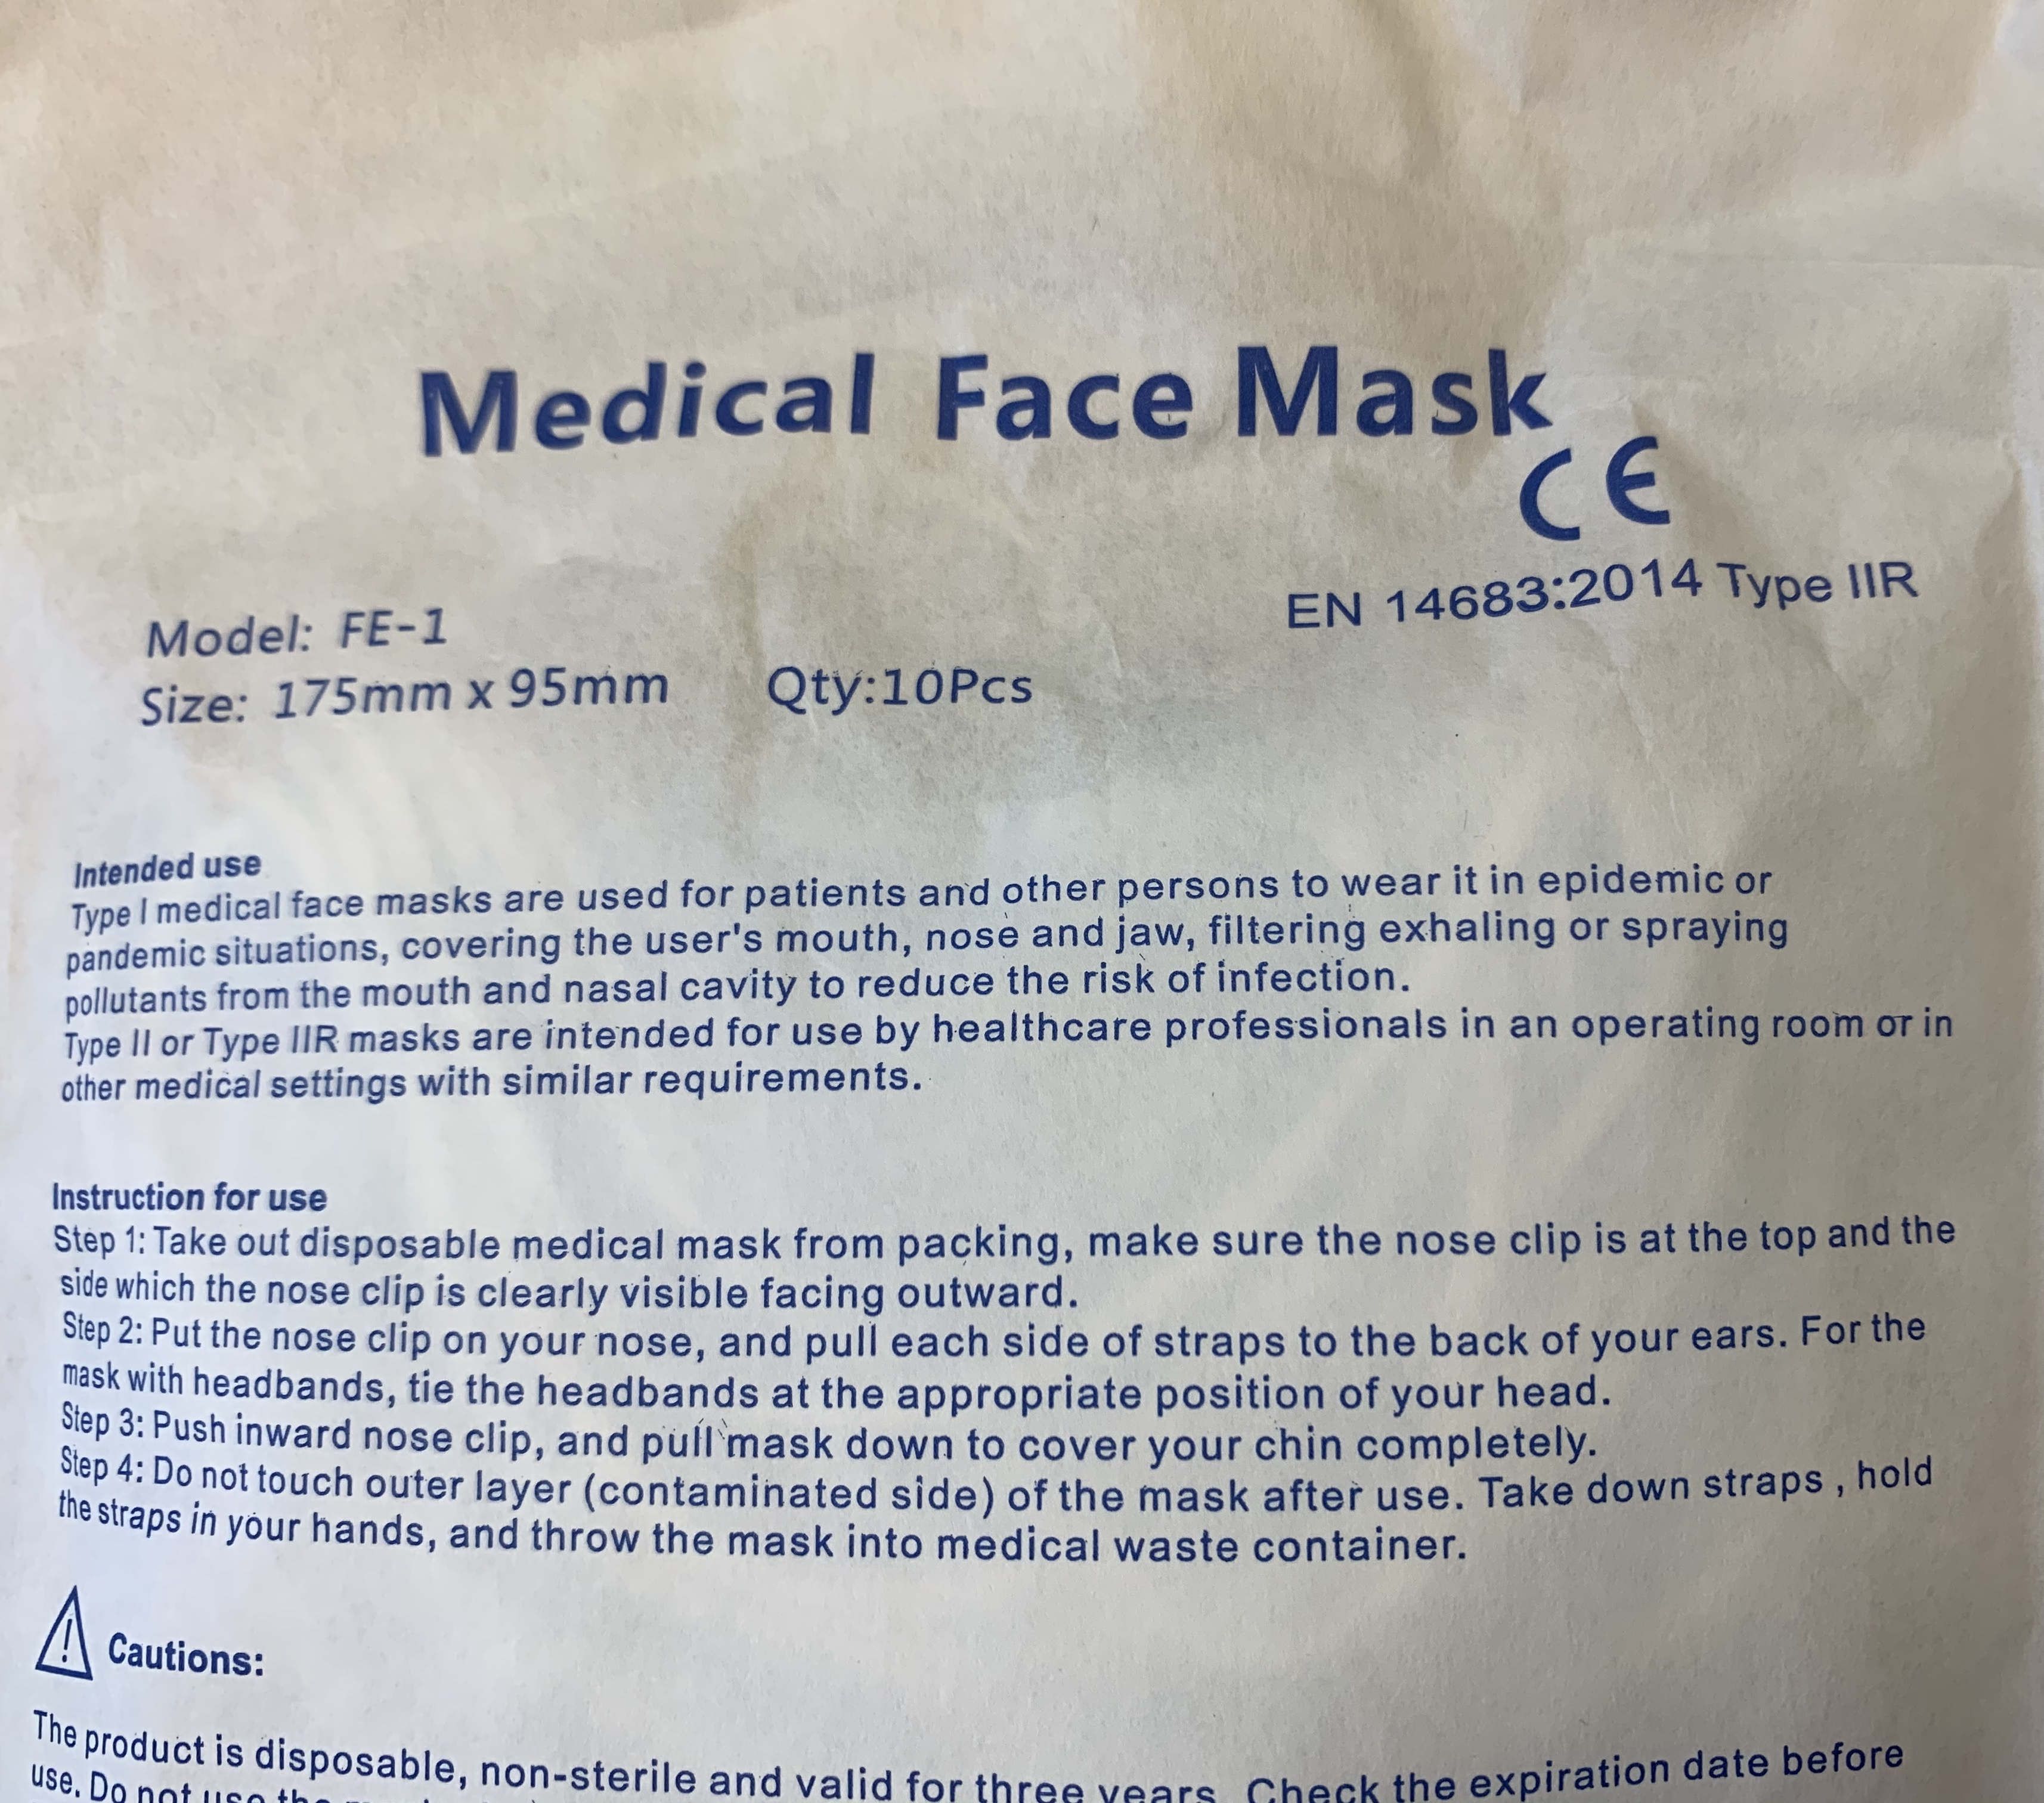 Type 2R (IIR) Medical Grade Surgical Face Masks (sealed pack of 10)